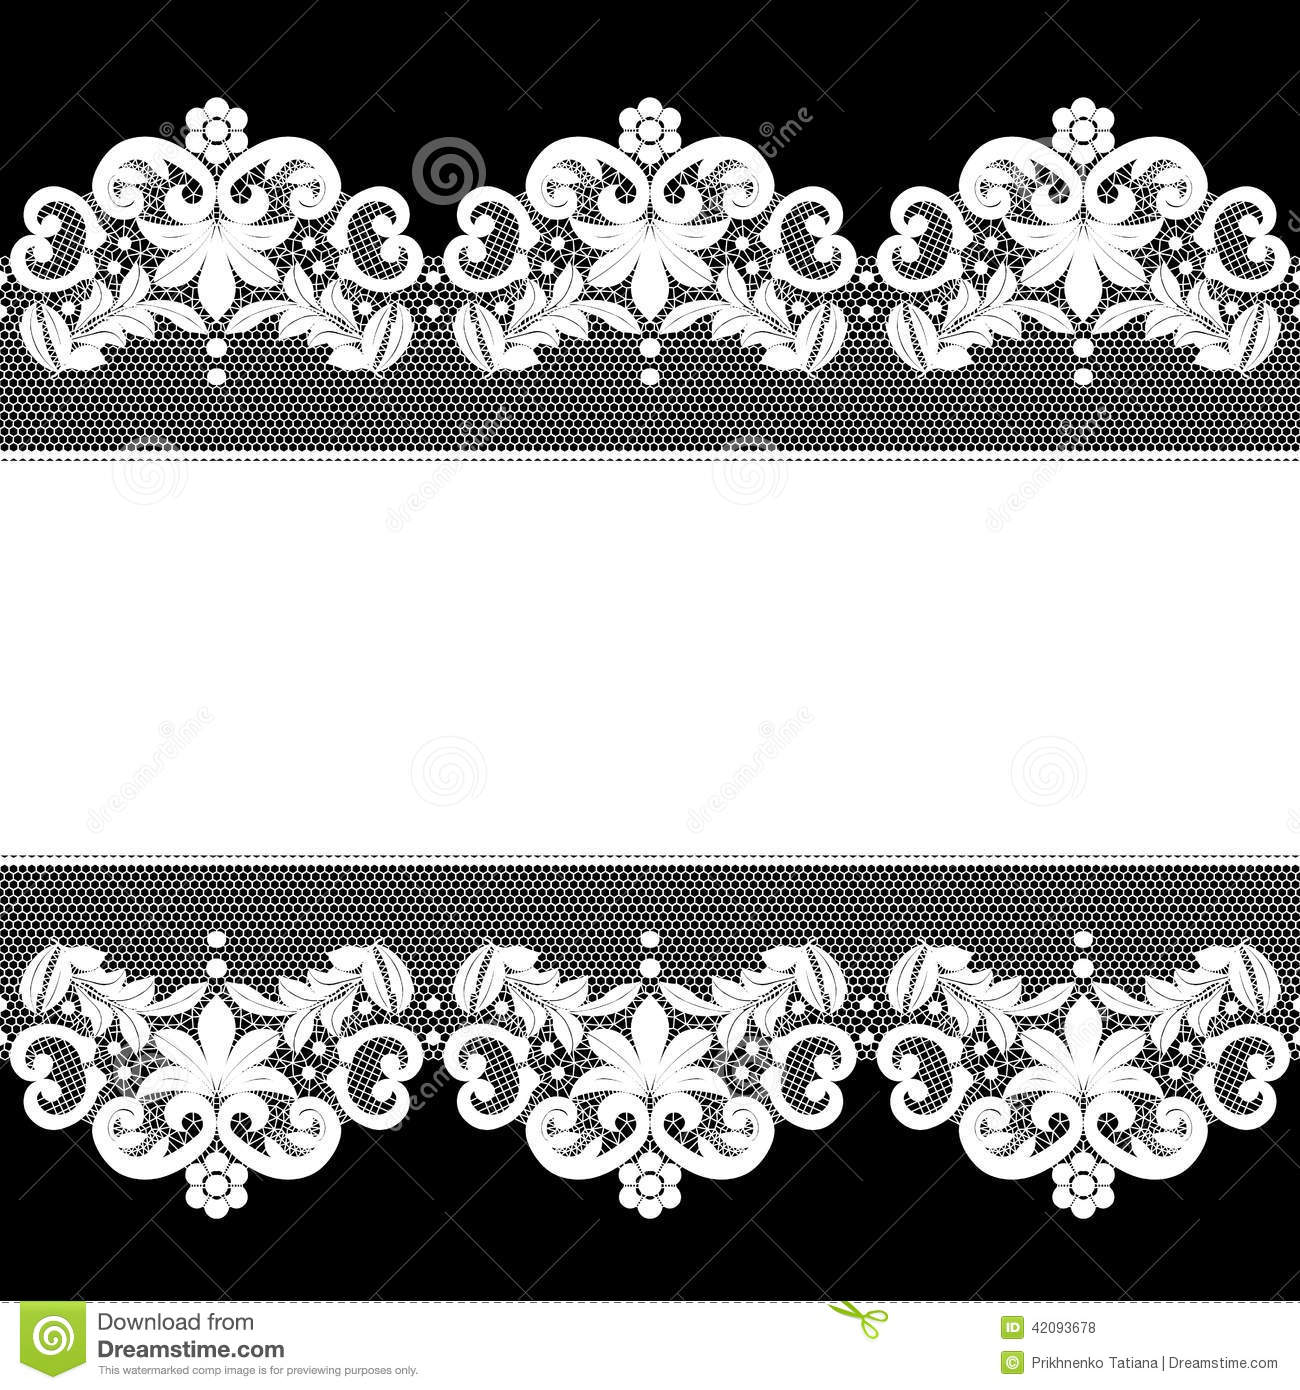 White Lace On Black Background Stock Vector - Illustration of ...